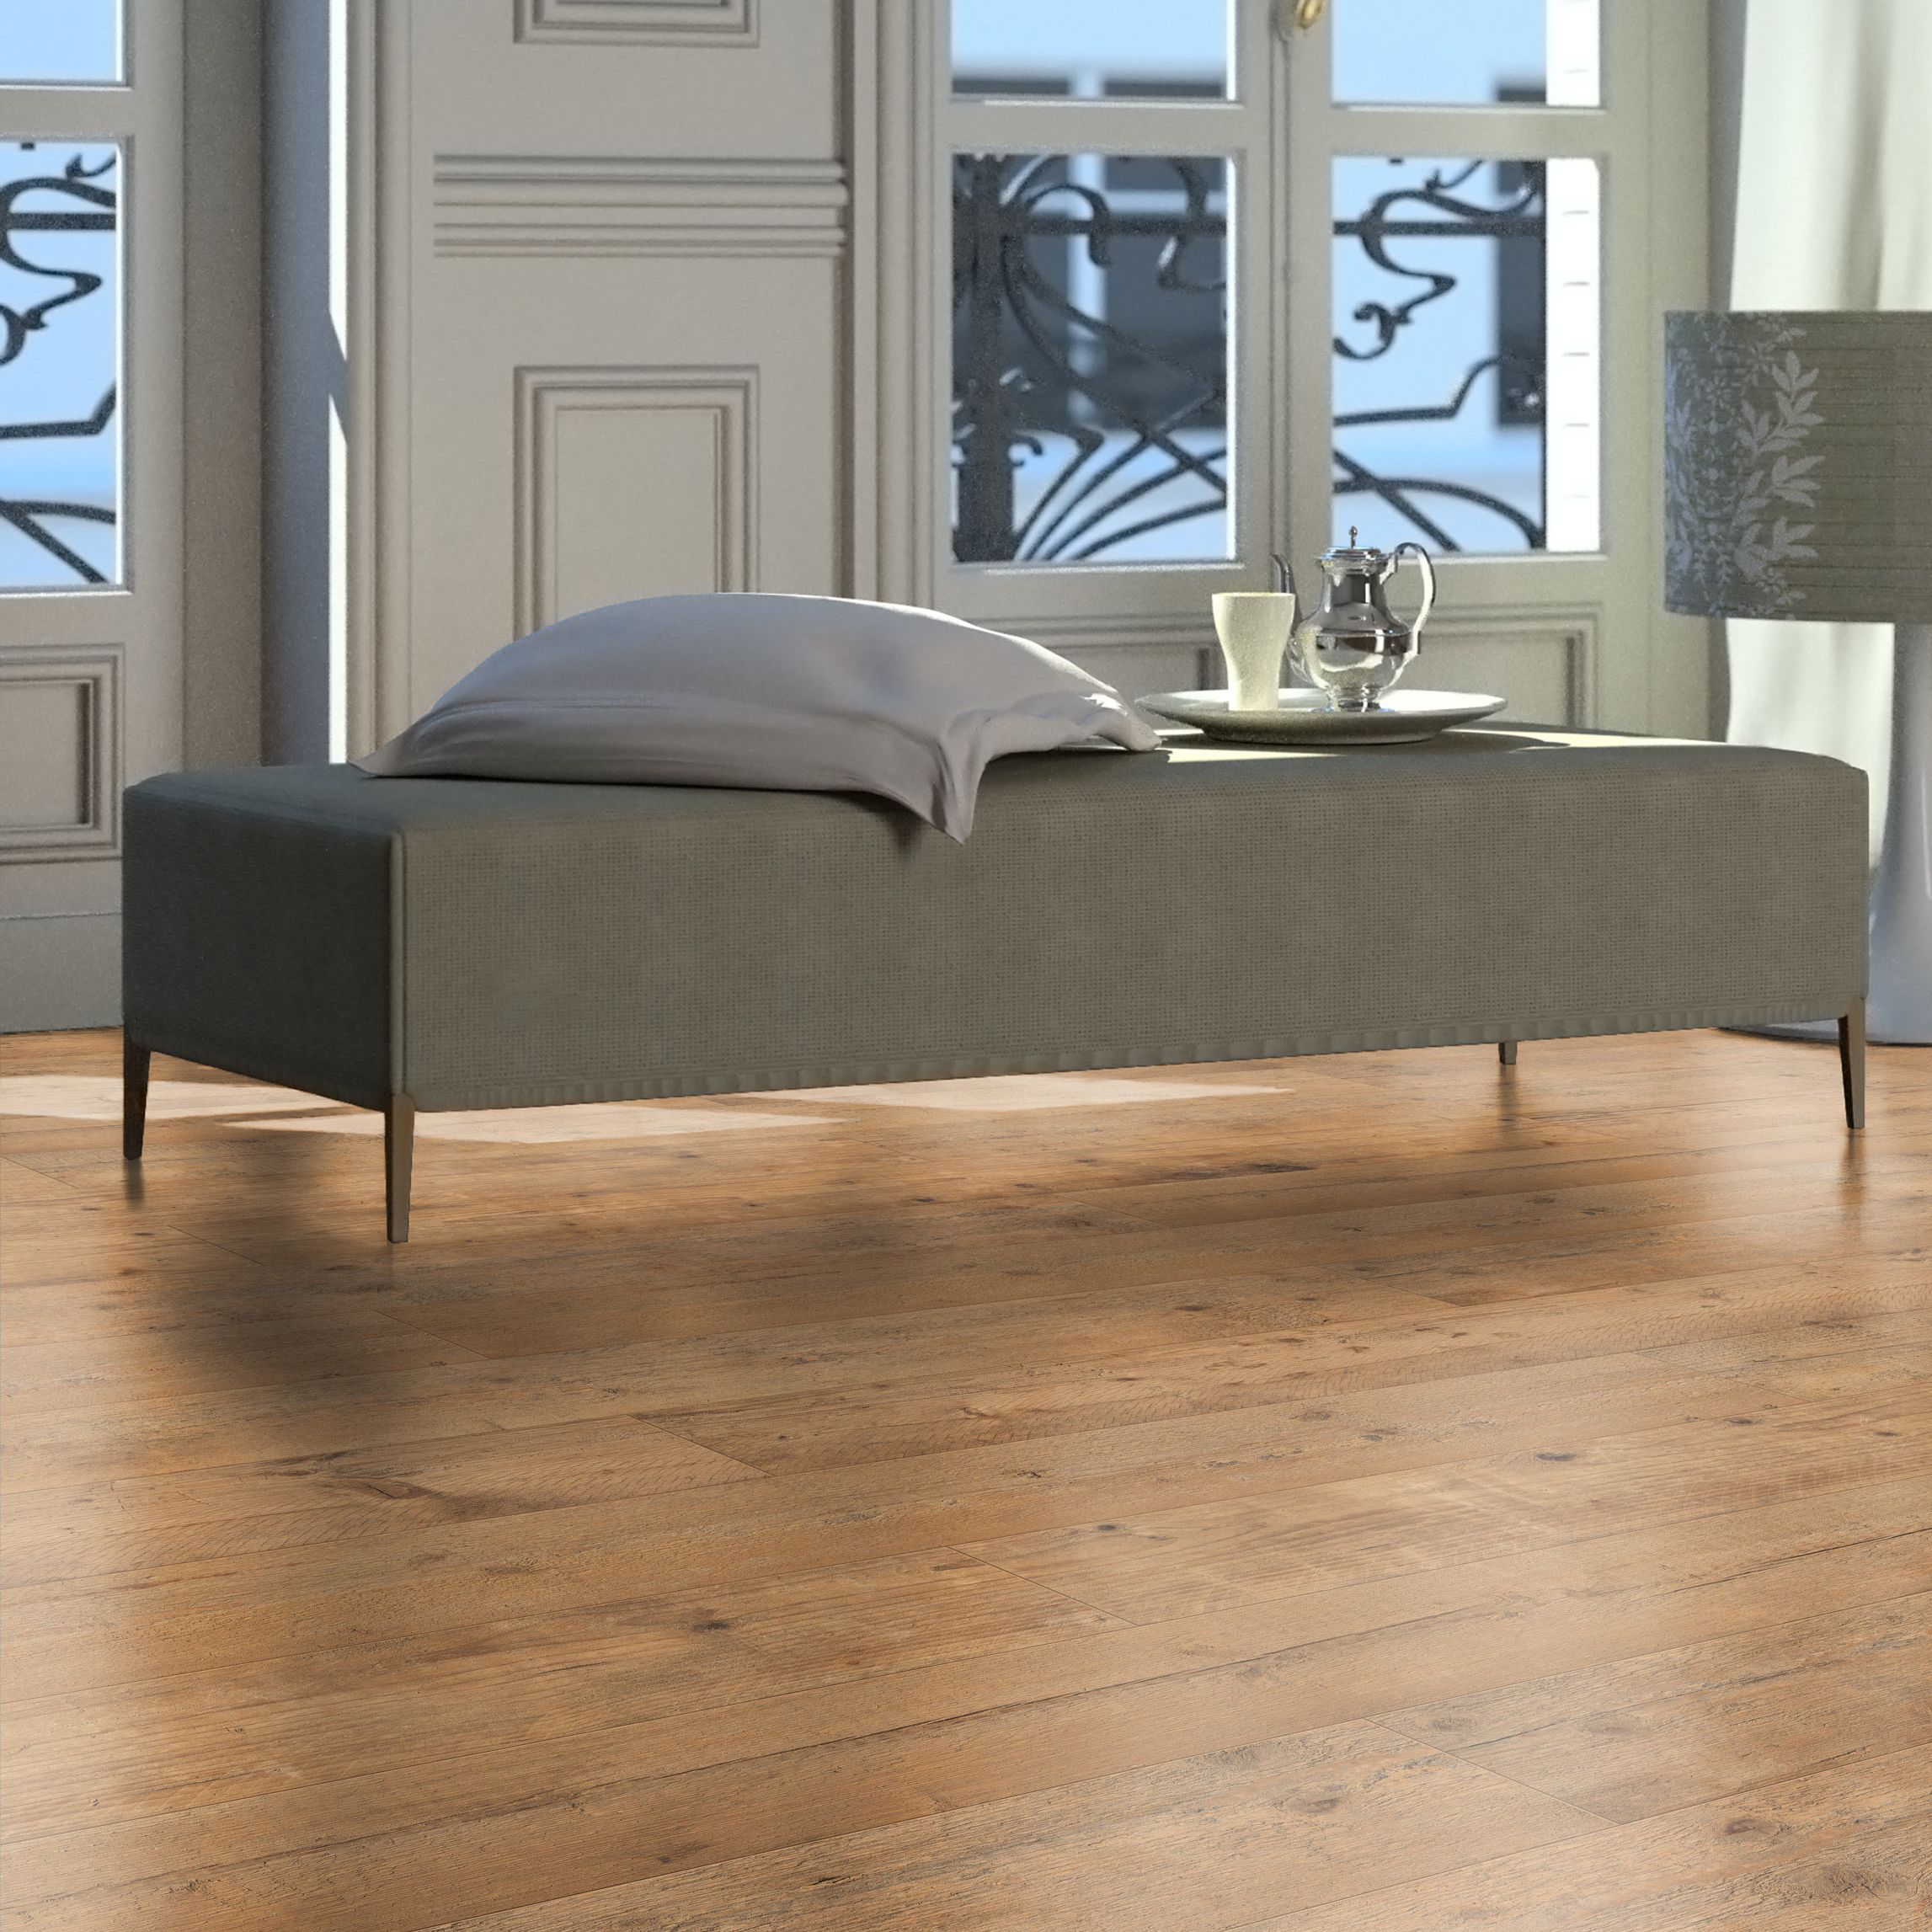 Sicily Oak Effect Laminate Flooring 1 99 M² Pack Departments Diy At B Q